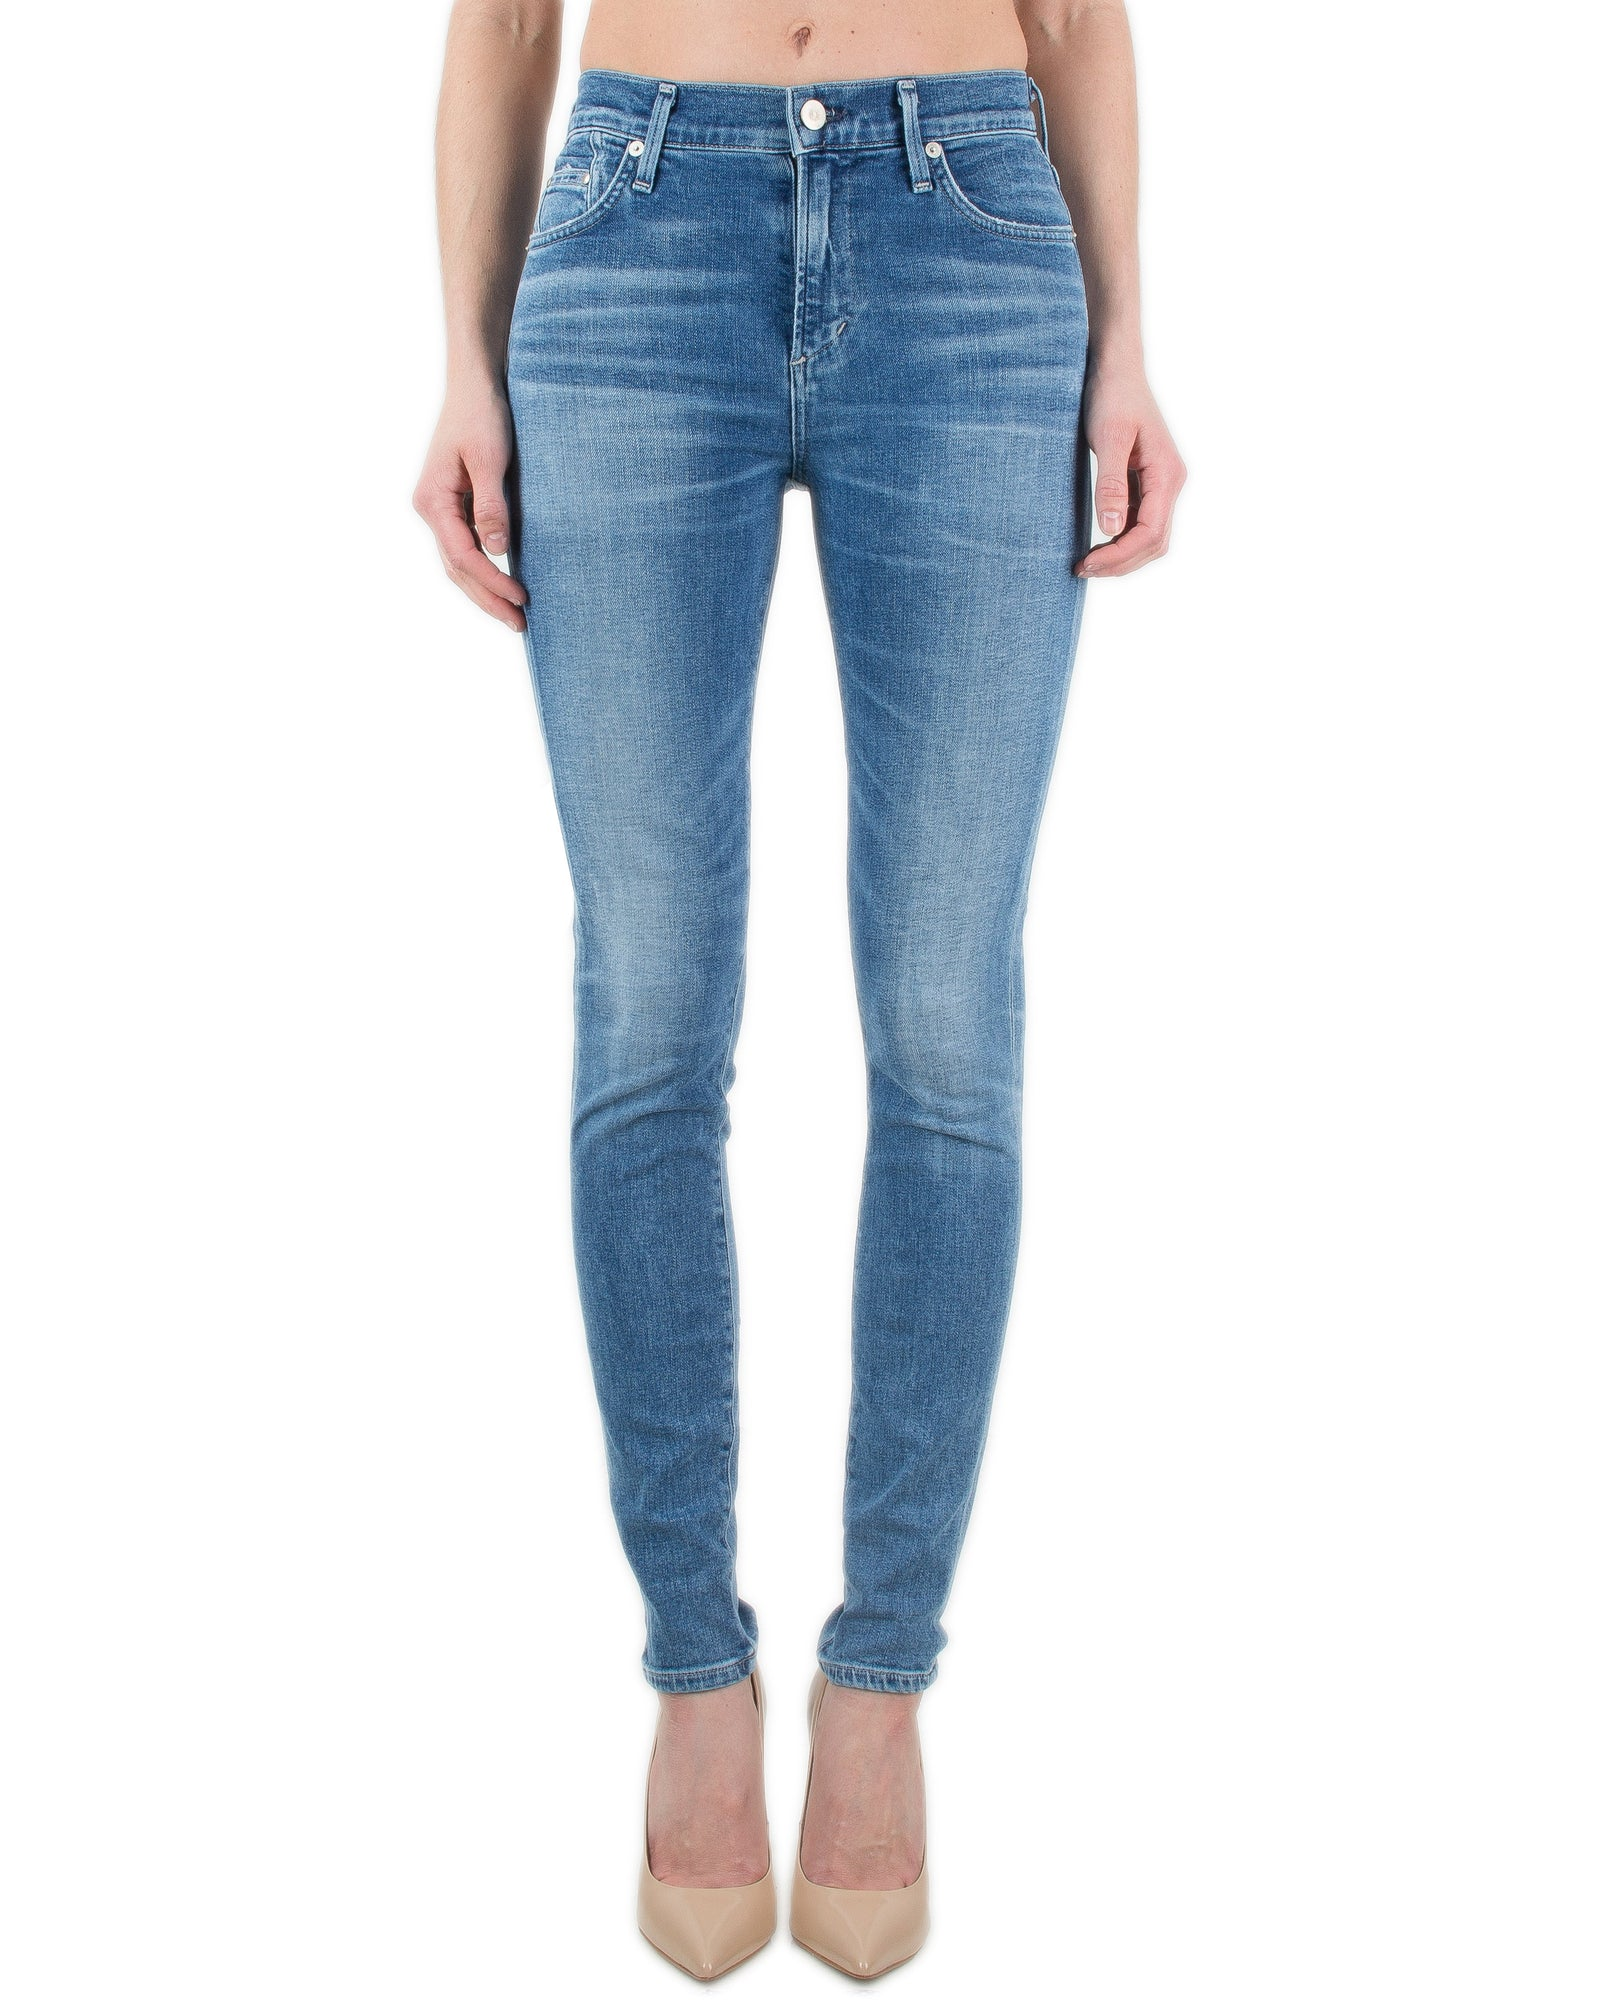 Citizen's of Humanity Denim Pacifica / 25 Rocket High Rise Skinny